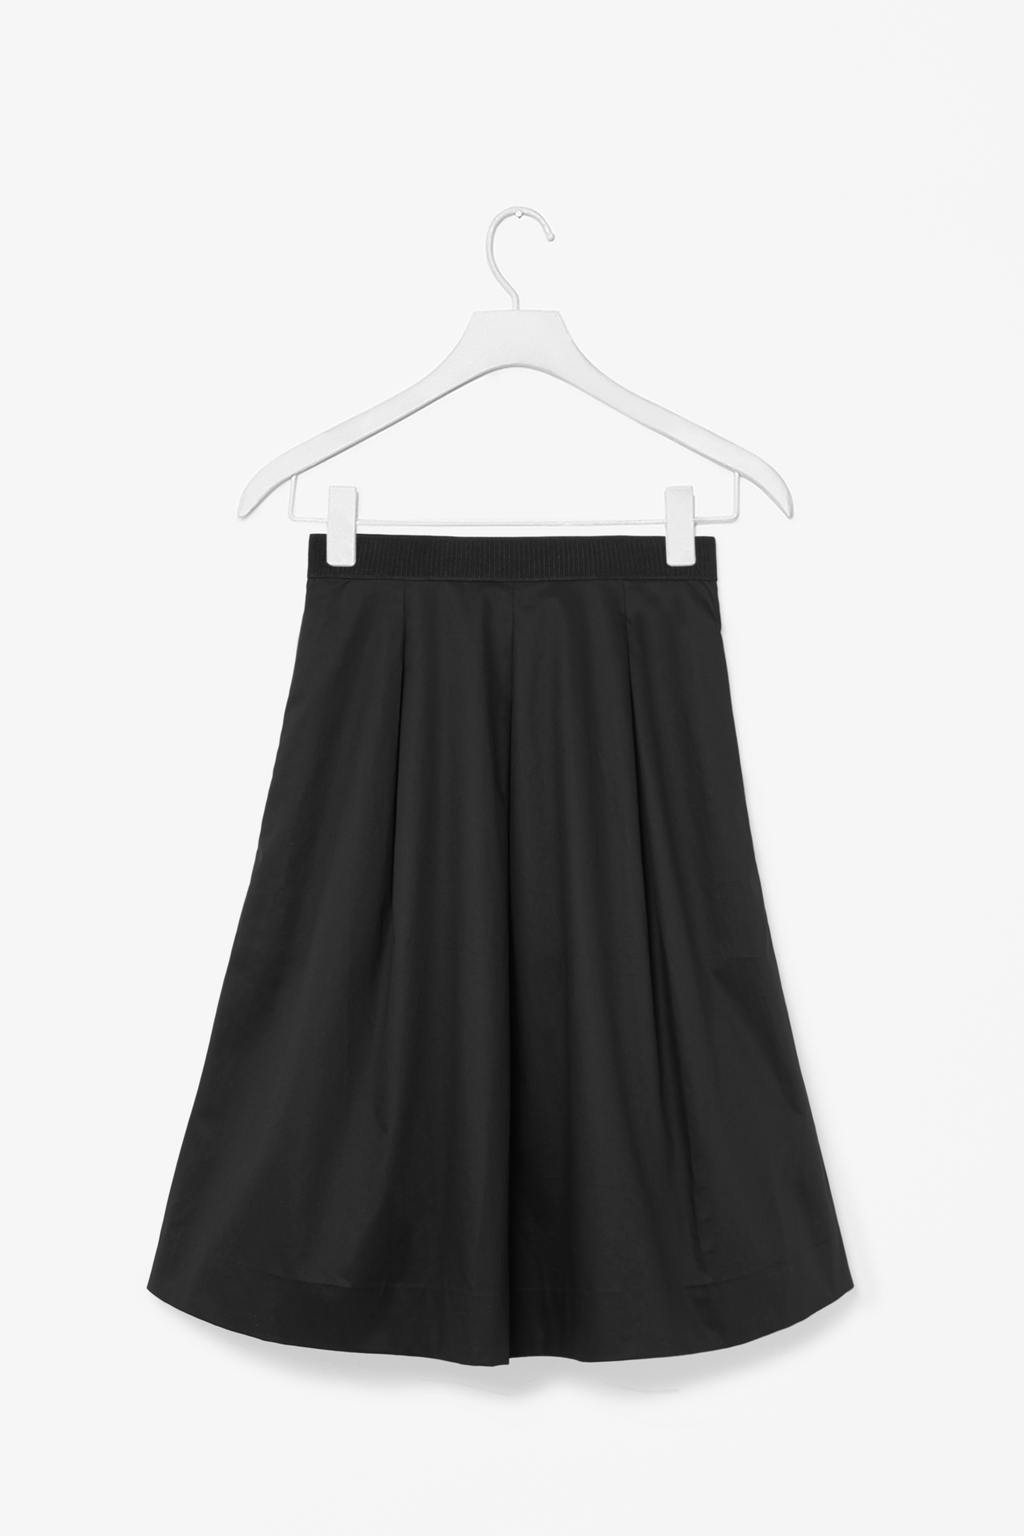 Skirt With Box Pleats - pattern: plain; style: full/prom skirt; fit: loose/voluminous; waist: high rise; predominant colour: black; occasions: casual, creative work; length: on the knee; fibres: cotton - 100%; hip detail: structured pleats at hip; texture group: cotton feel fabrics; pattern type: fabric; season: s/s 2014